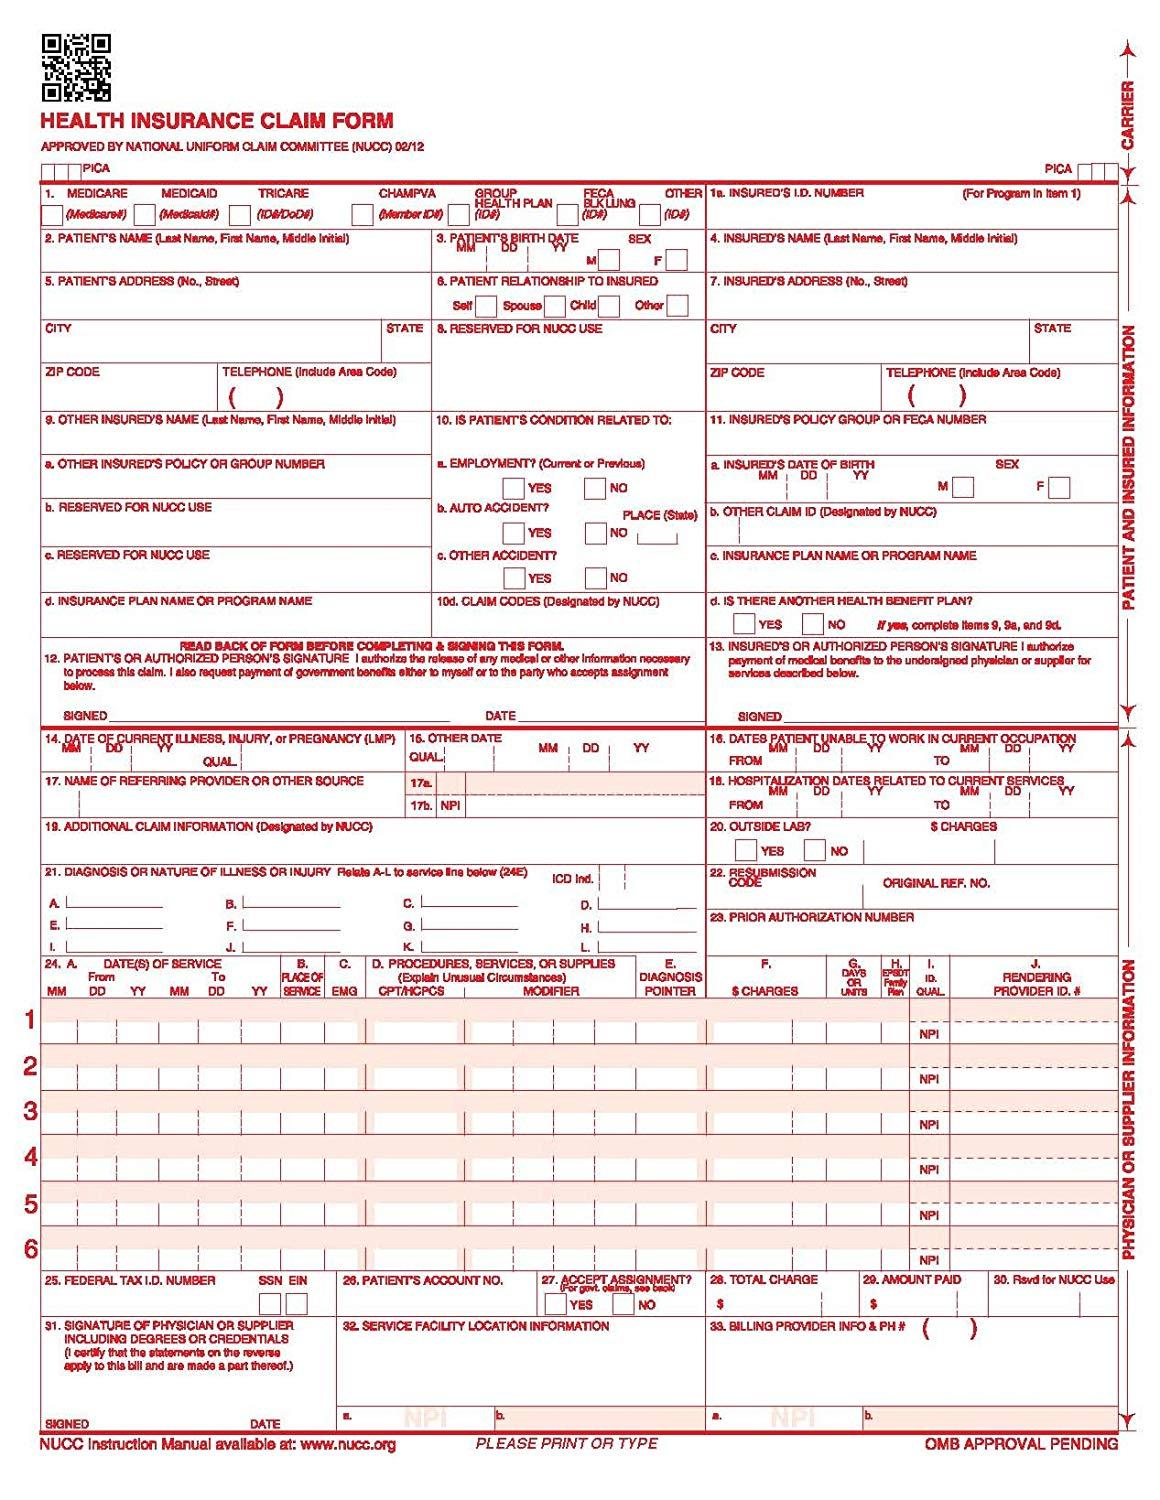 Cms Form 1500 Fillable